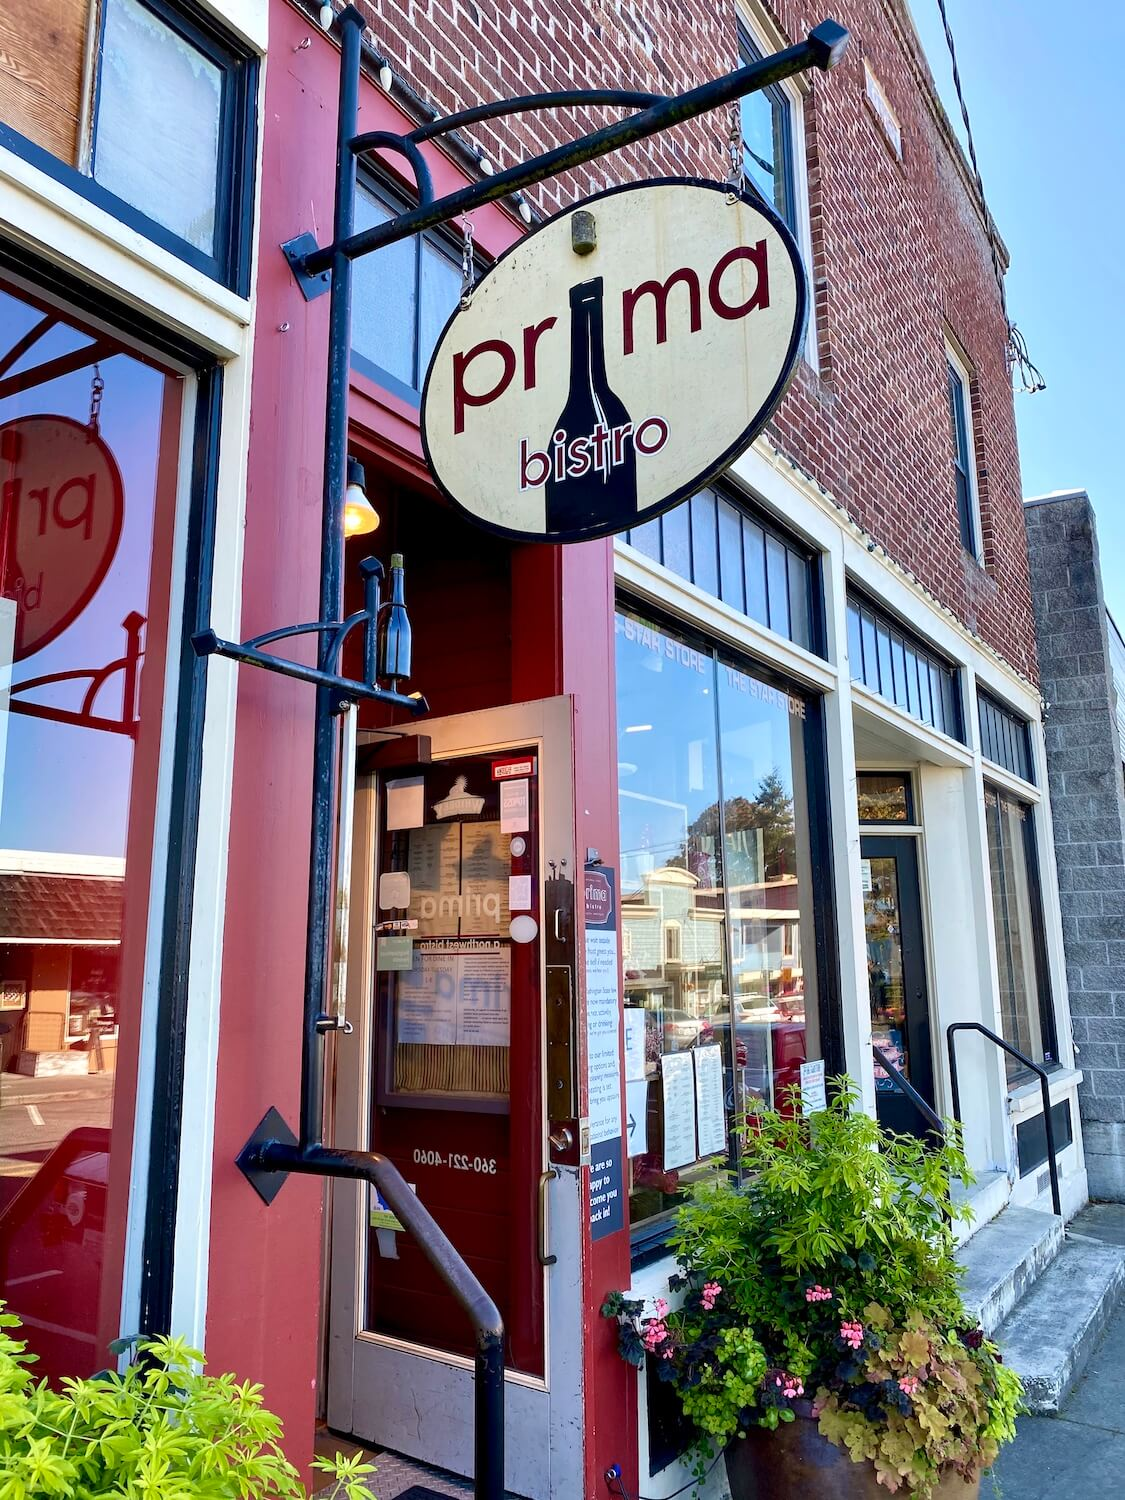 A sign for Prima Bistro hangs from a black metal rod leaning from the red brick building out to the street in Langley, Washington. There is a flower pot with green shrubs and a few flowers.